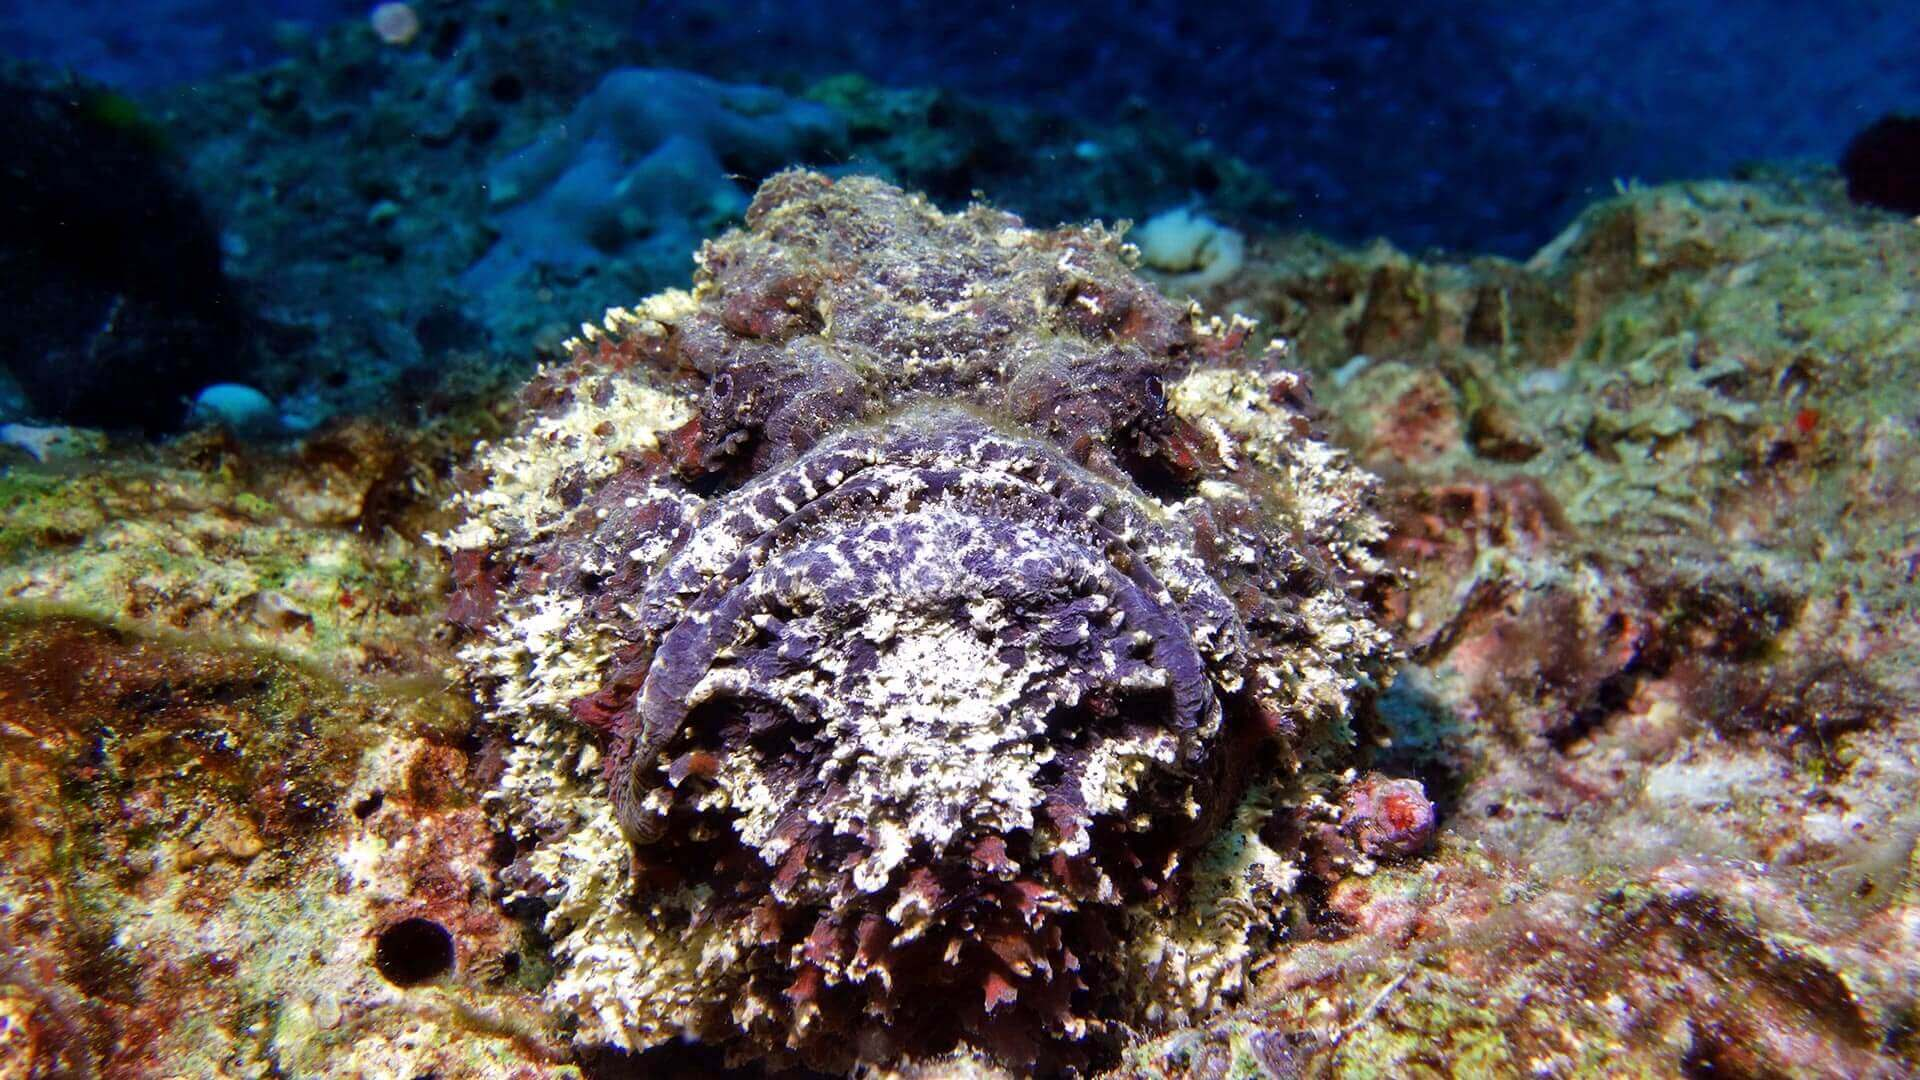 The Stonefish